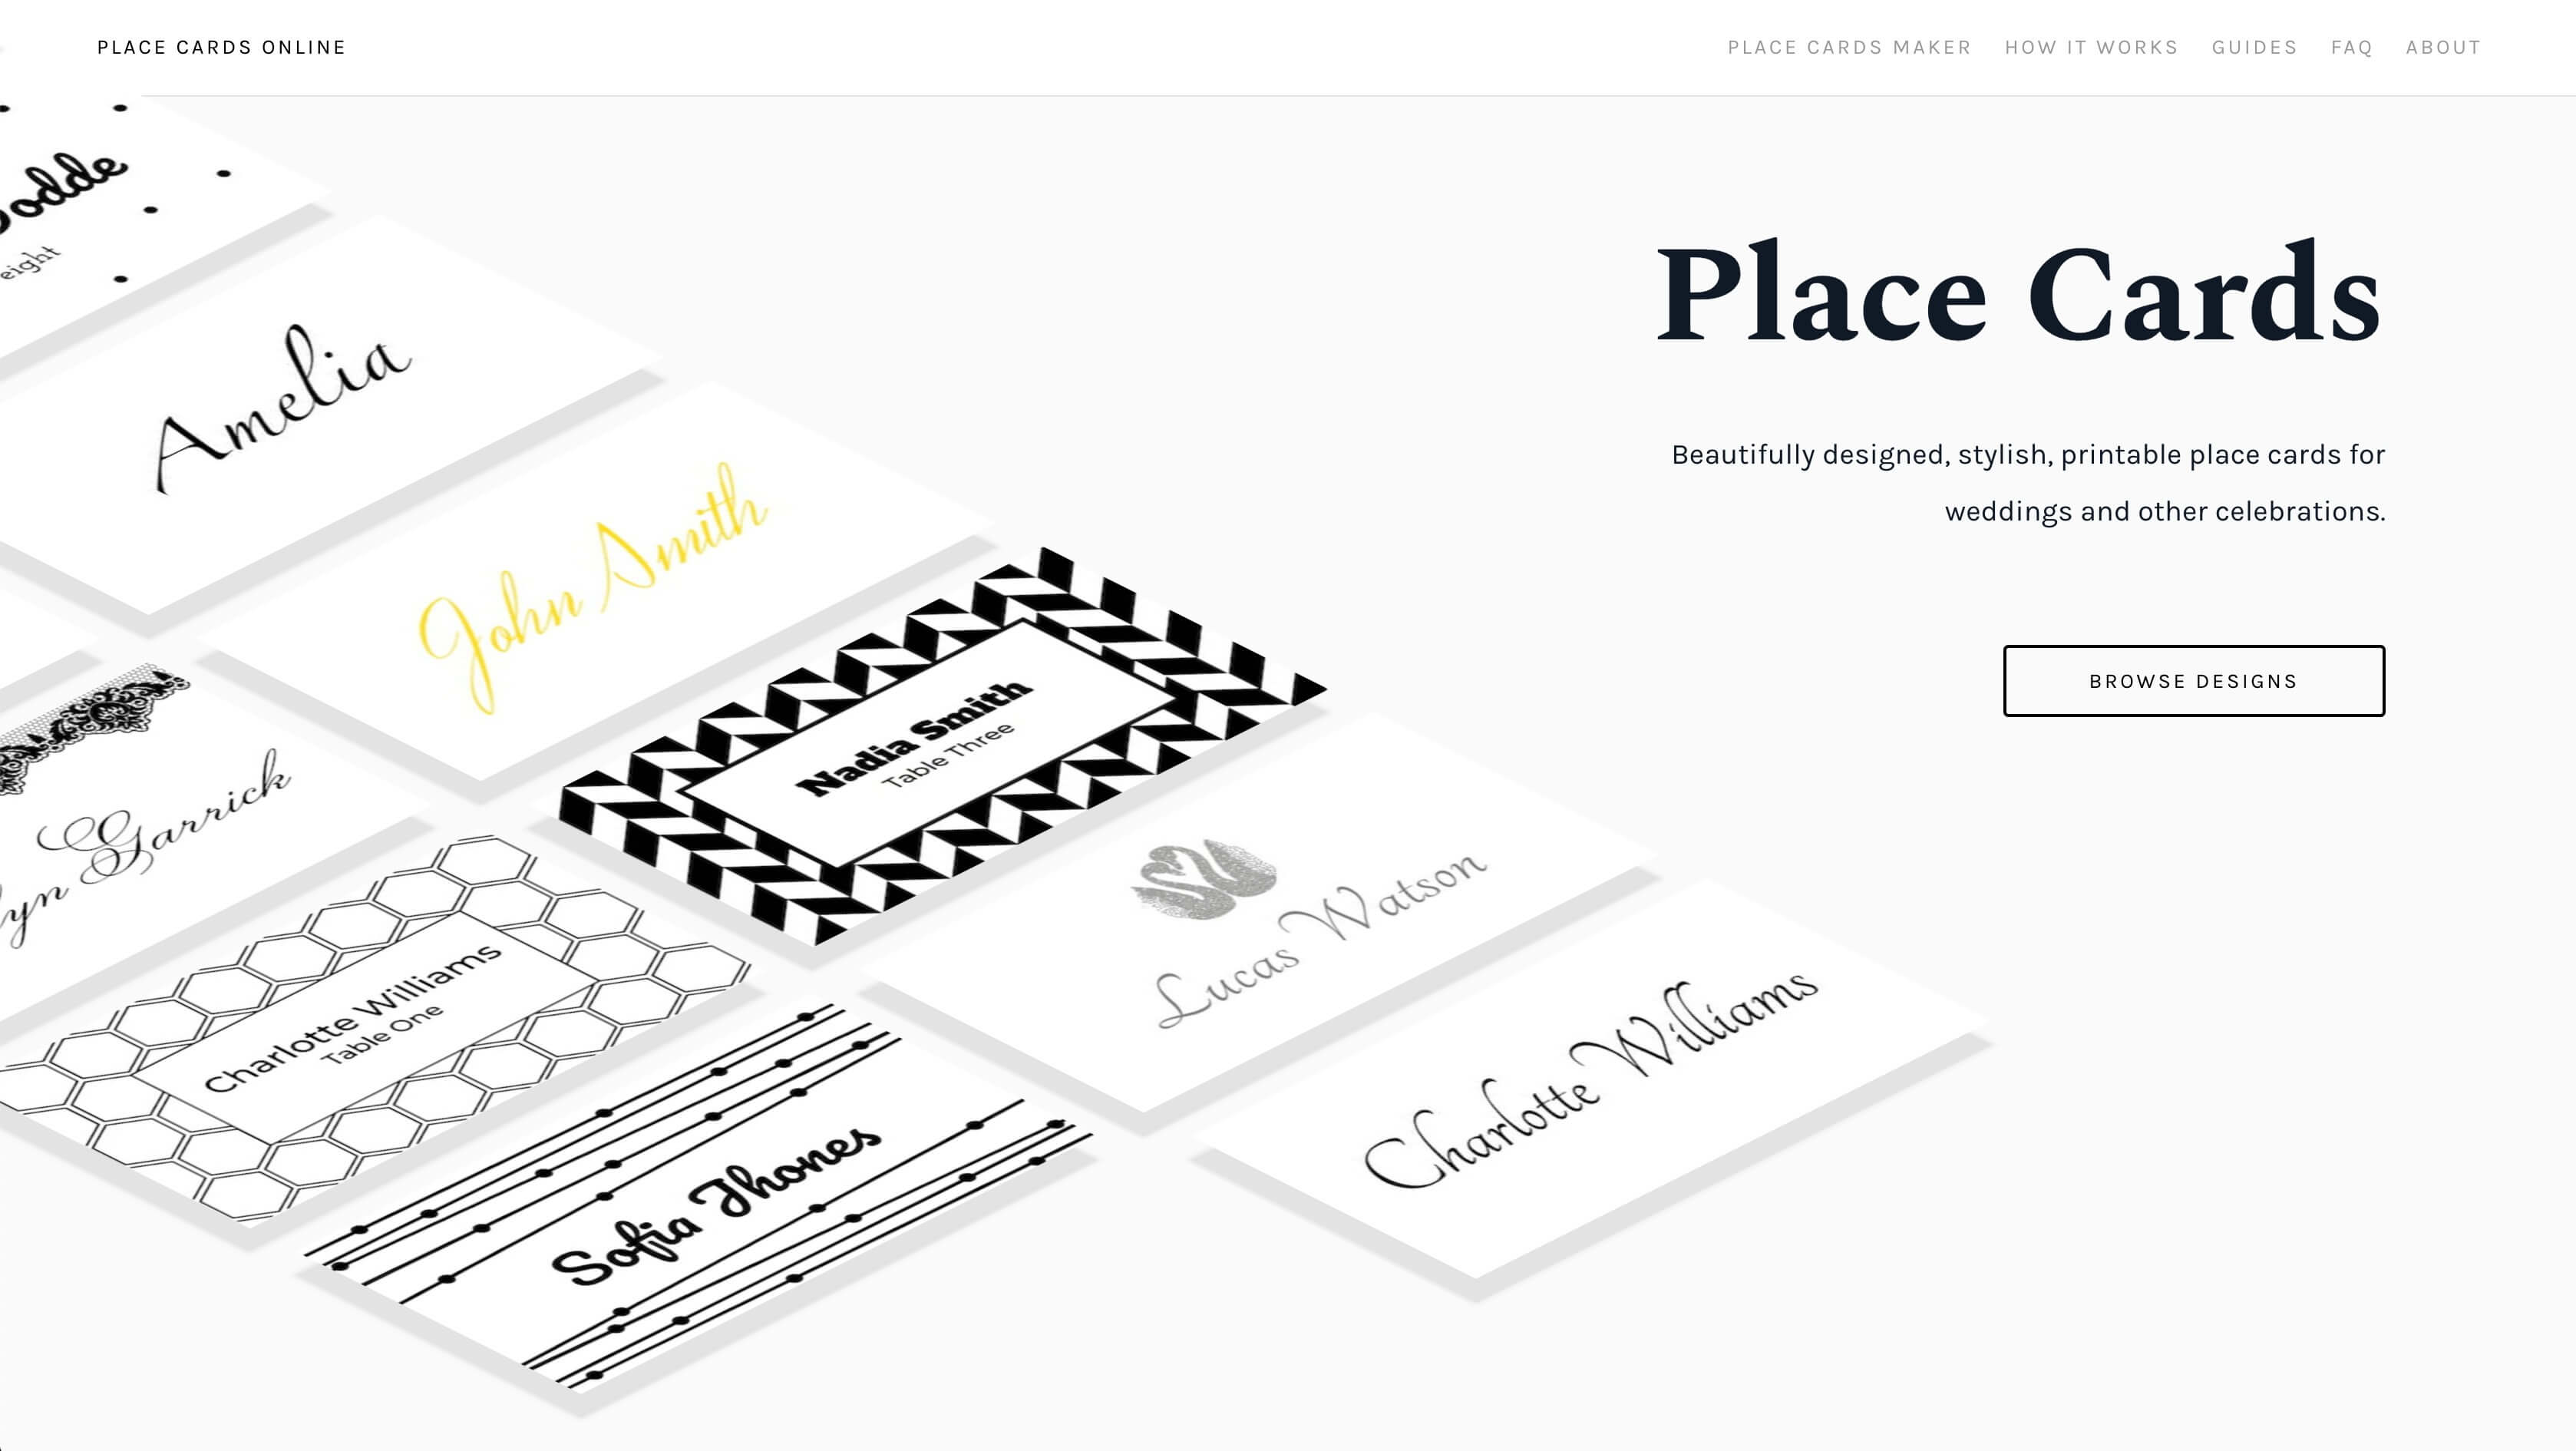 Place Cards Online - Place Cards Maker. Beautifully Designed with regard to Celebrate It Templates Place Cards